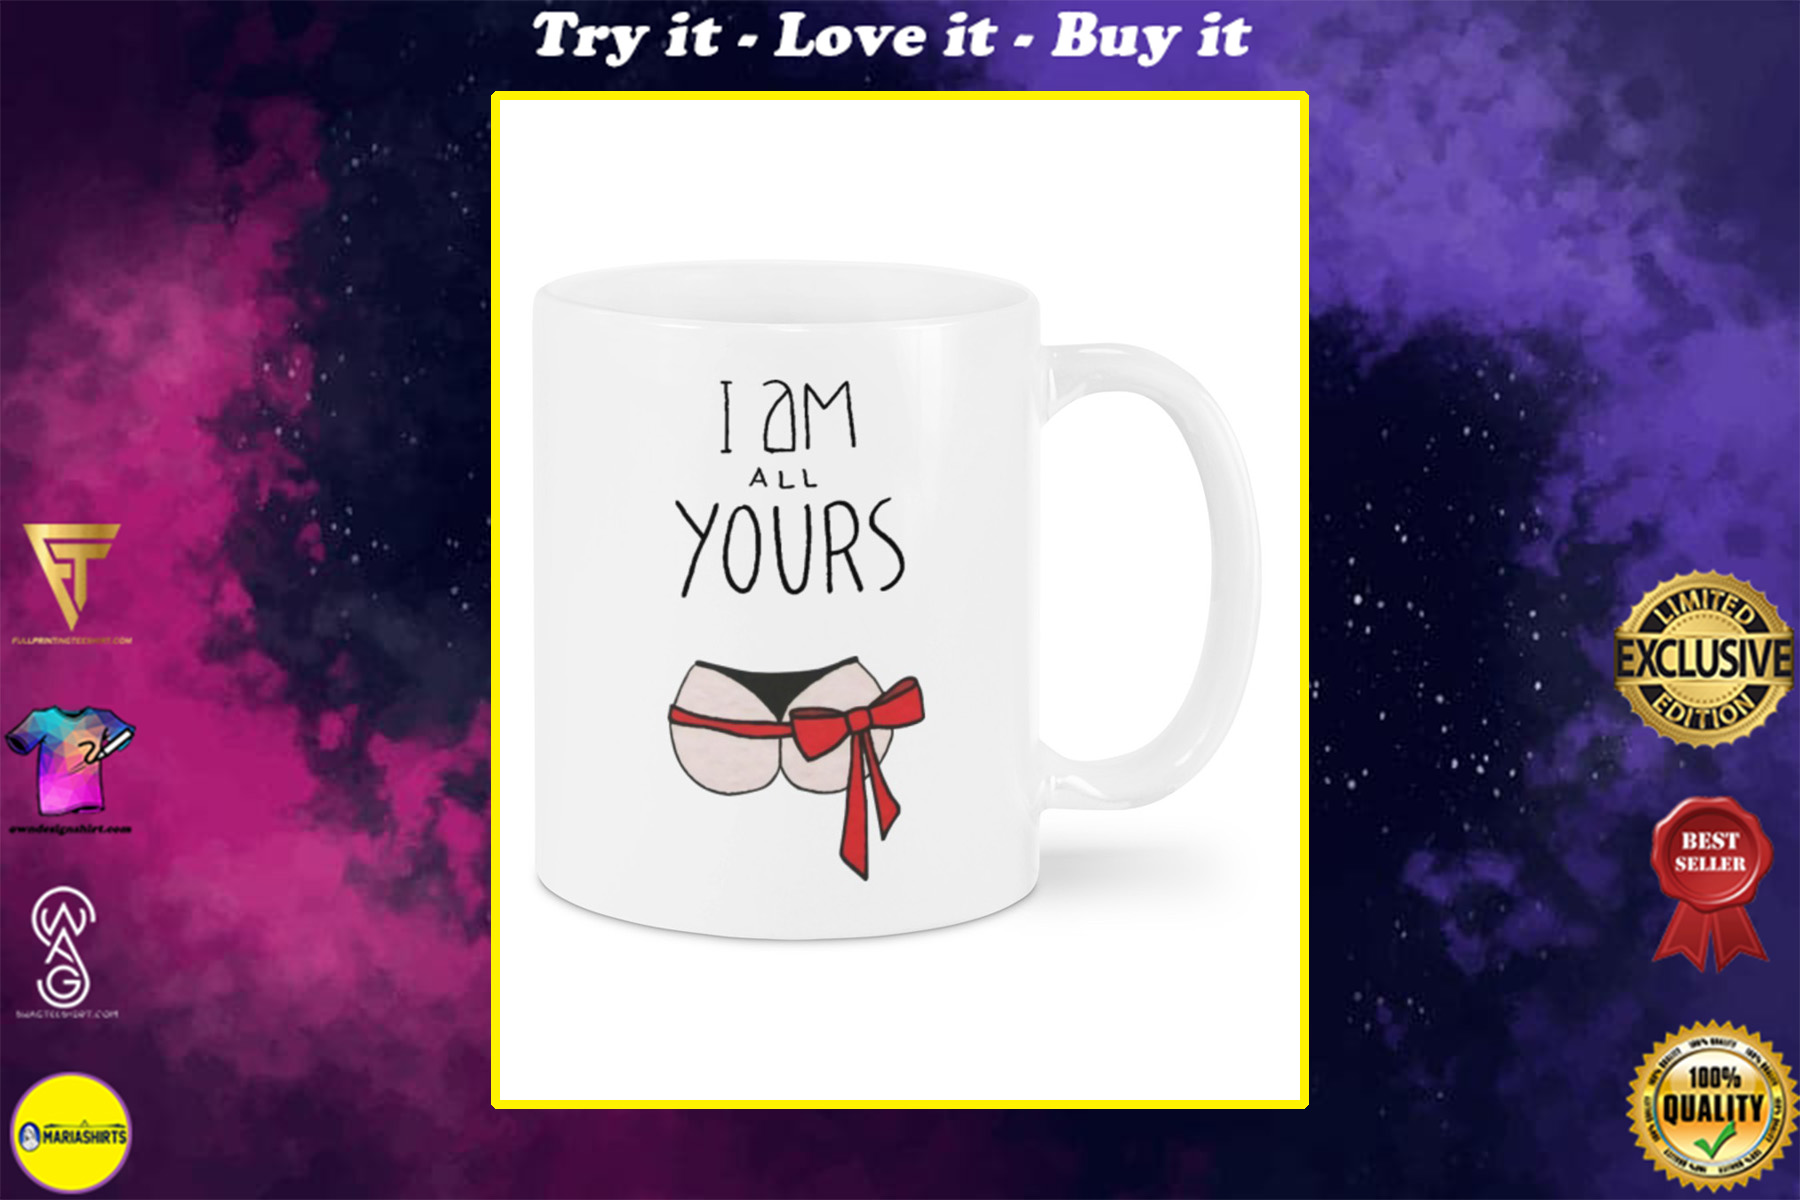 i am all yours butt happy valentine's day mug